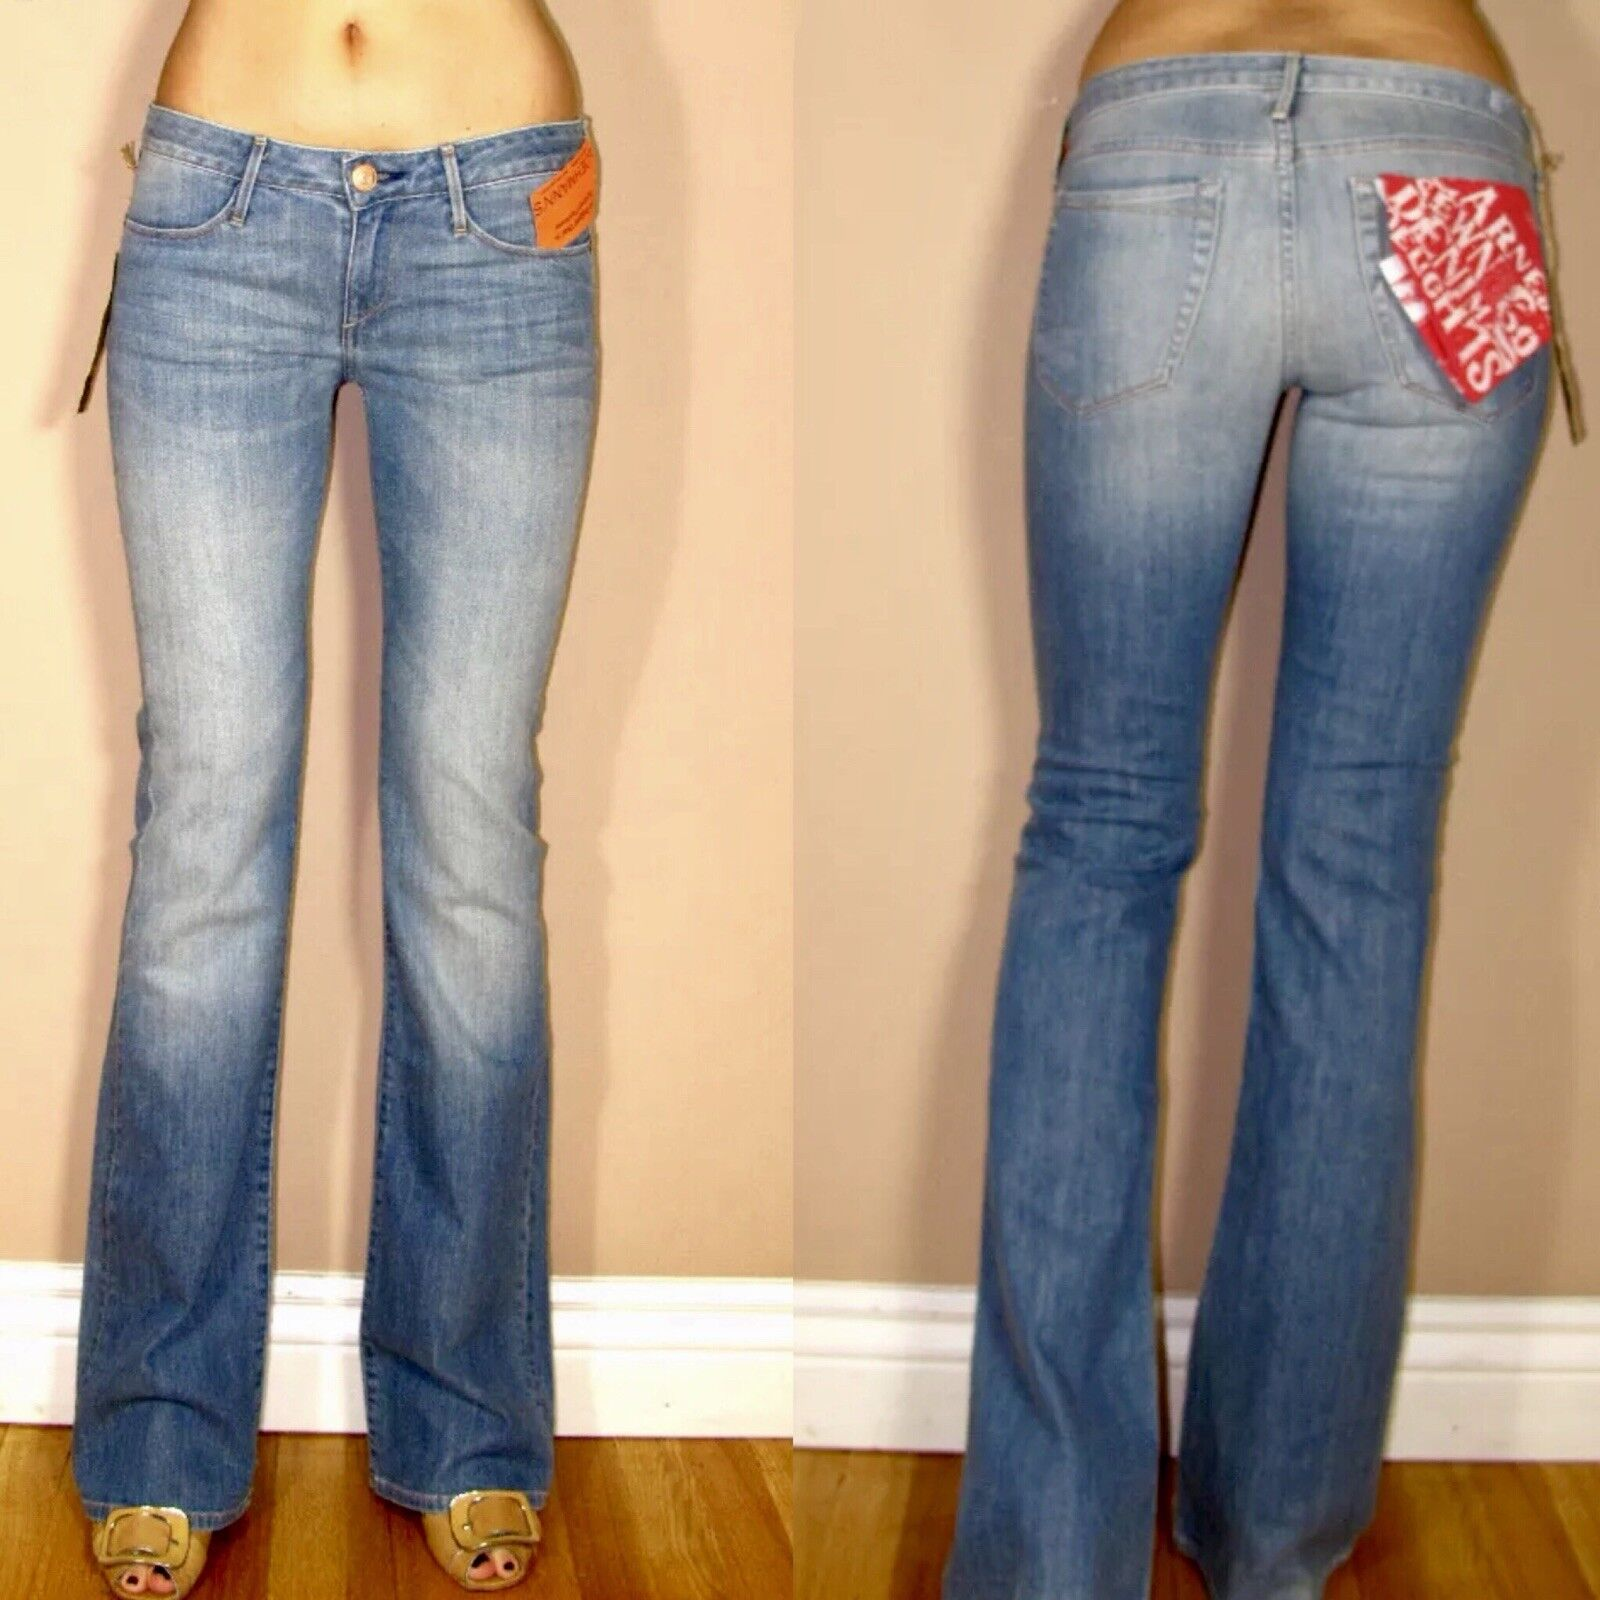 Earnest Sewn Ali Dudley Light Low Rise Bootcut X-Soft Jeans 24-28 USA Made